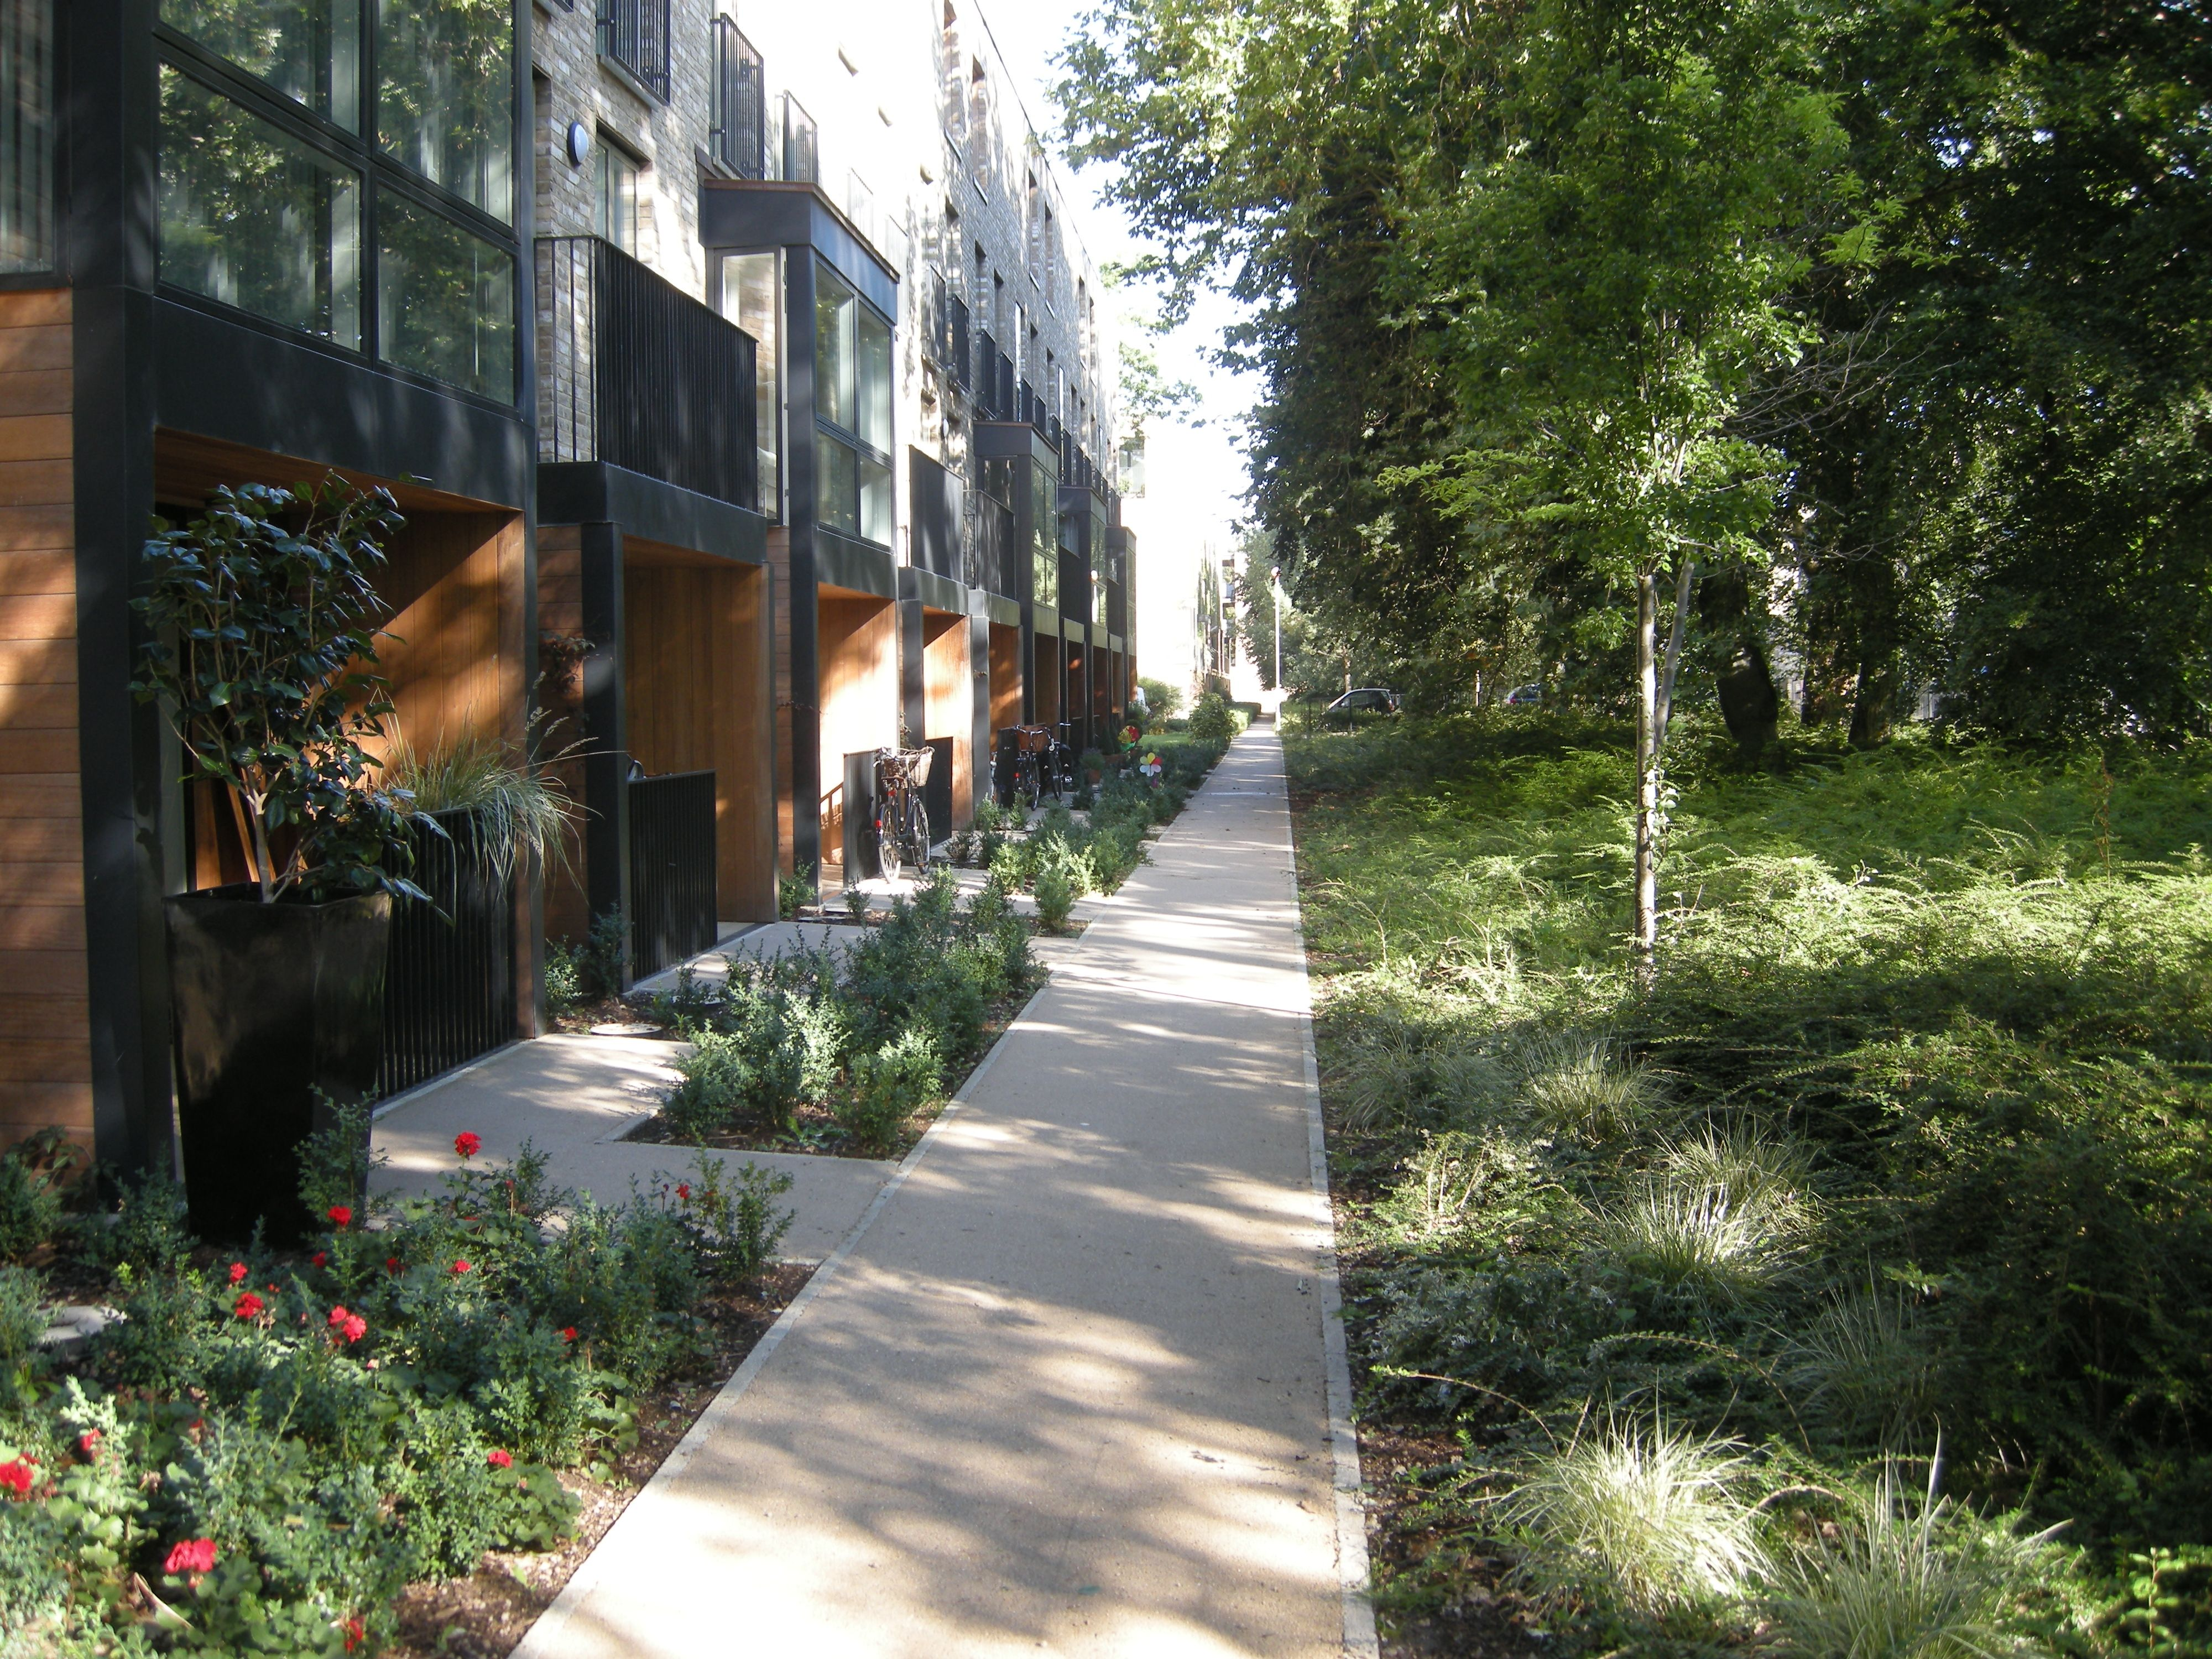 Accordia cambridge residential development cambridge for Residential landscape architecture